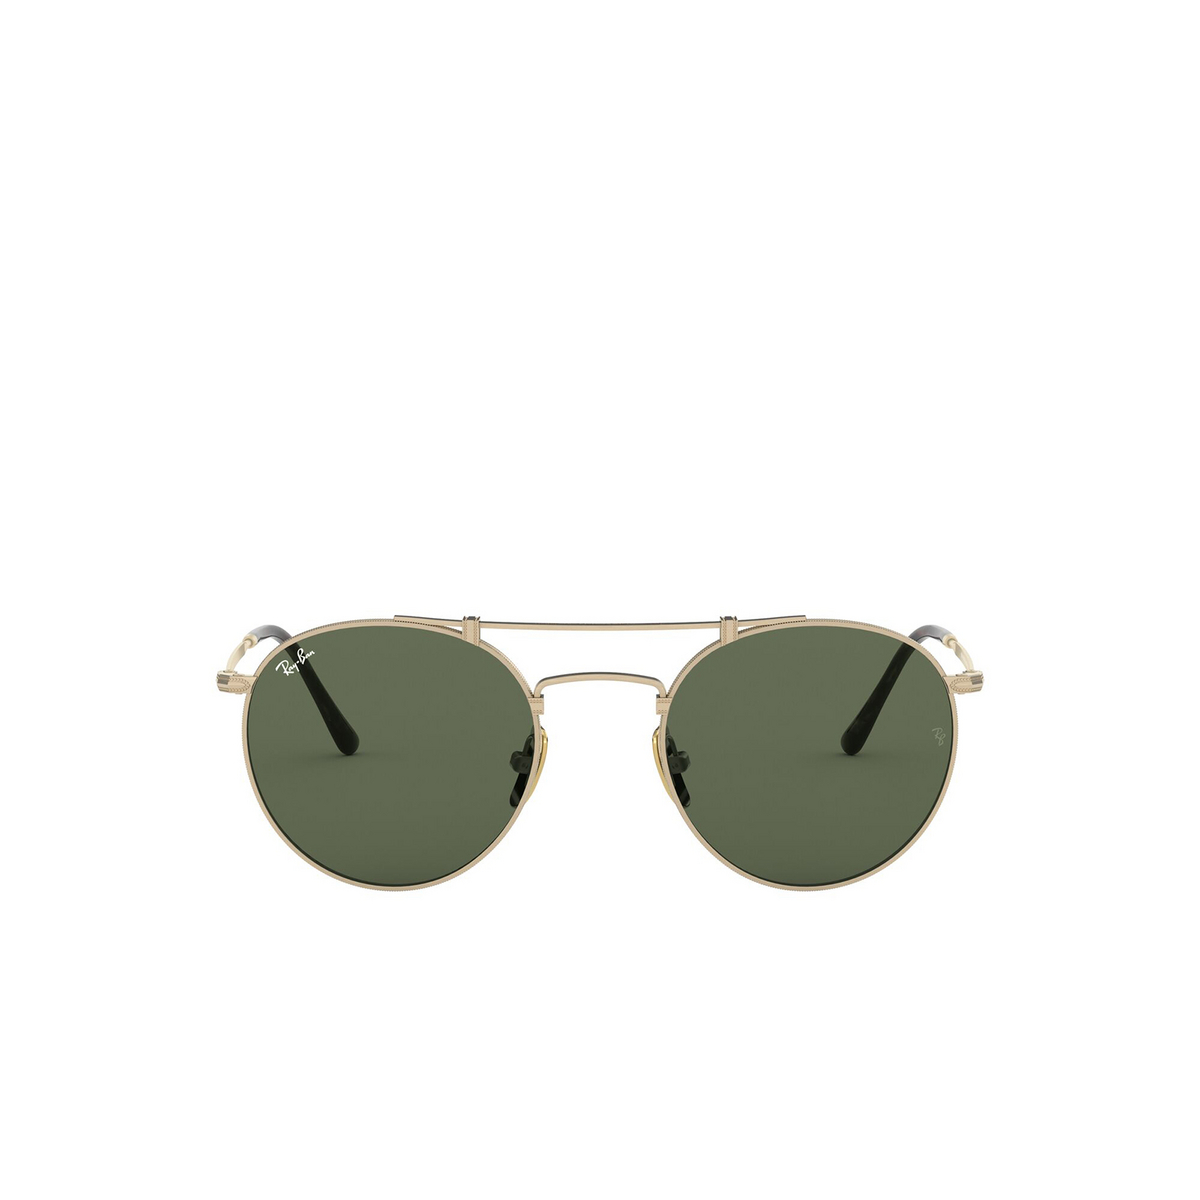 Ray-Ban® Round Sunglasses: Titanium RB8147 color Brushed Demi Gloss White Gold 913658 - front view.